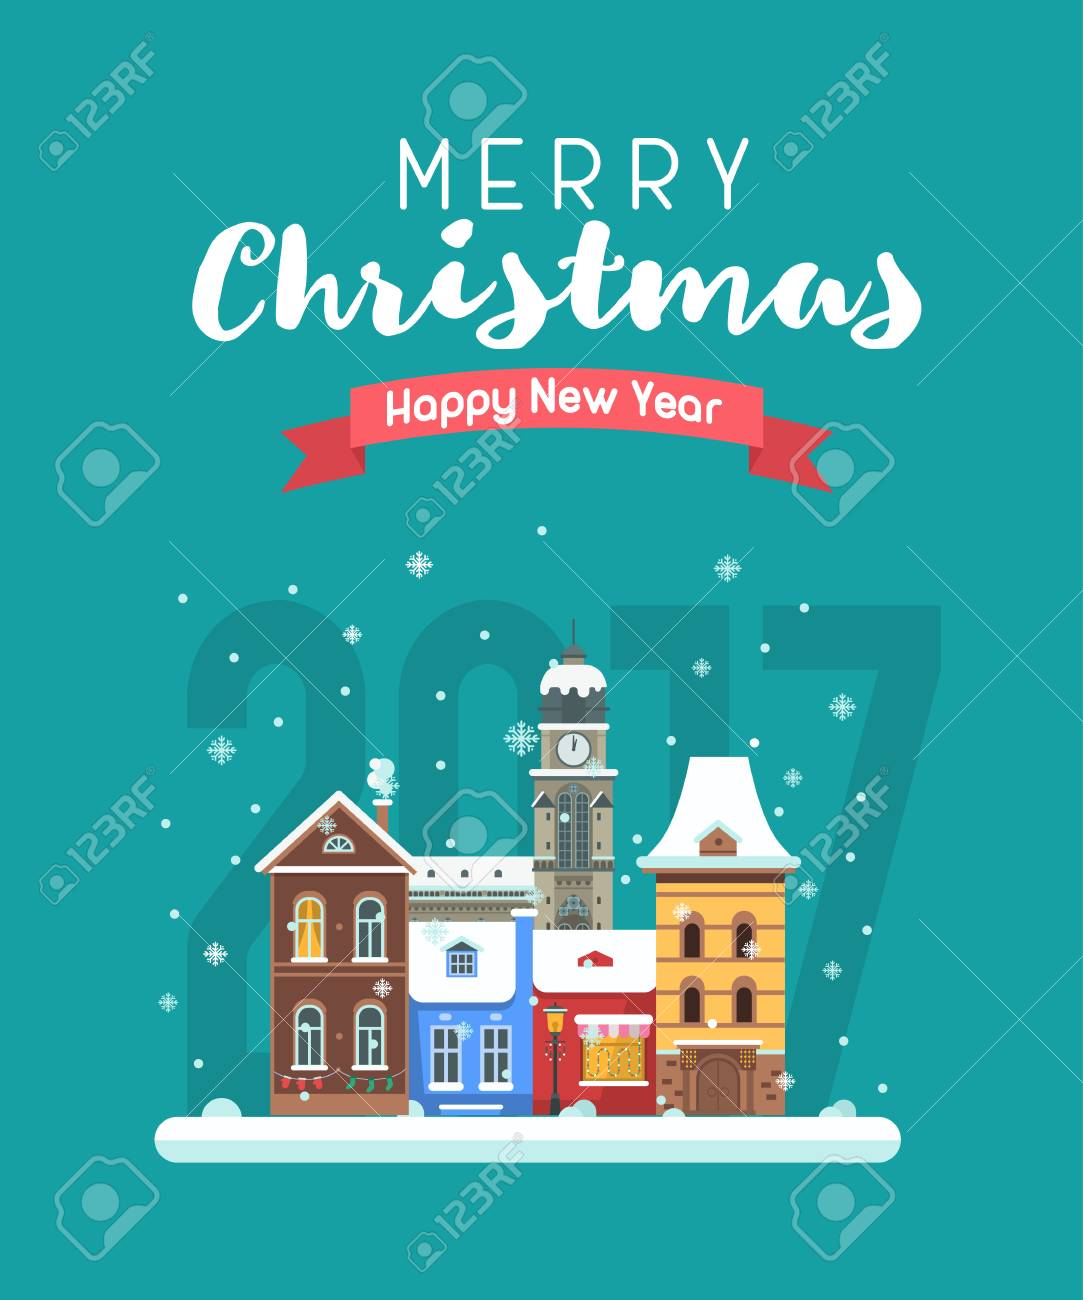 Vector Christmas Wishing Card With Traditional Celebrating Text